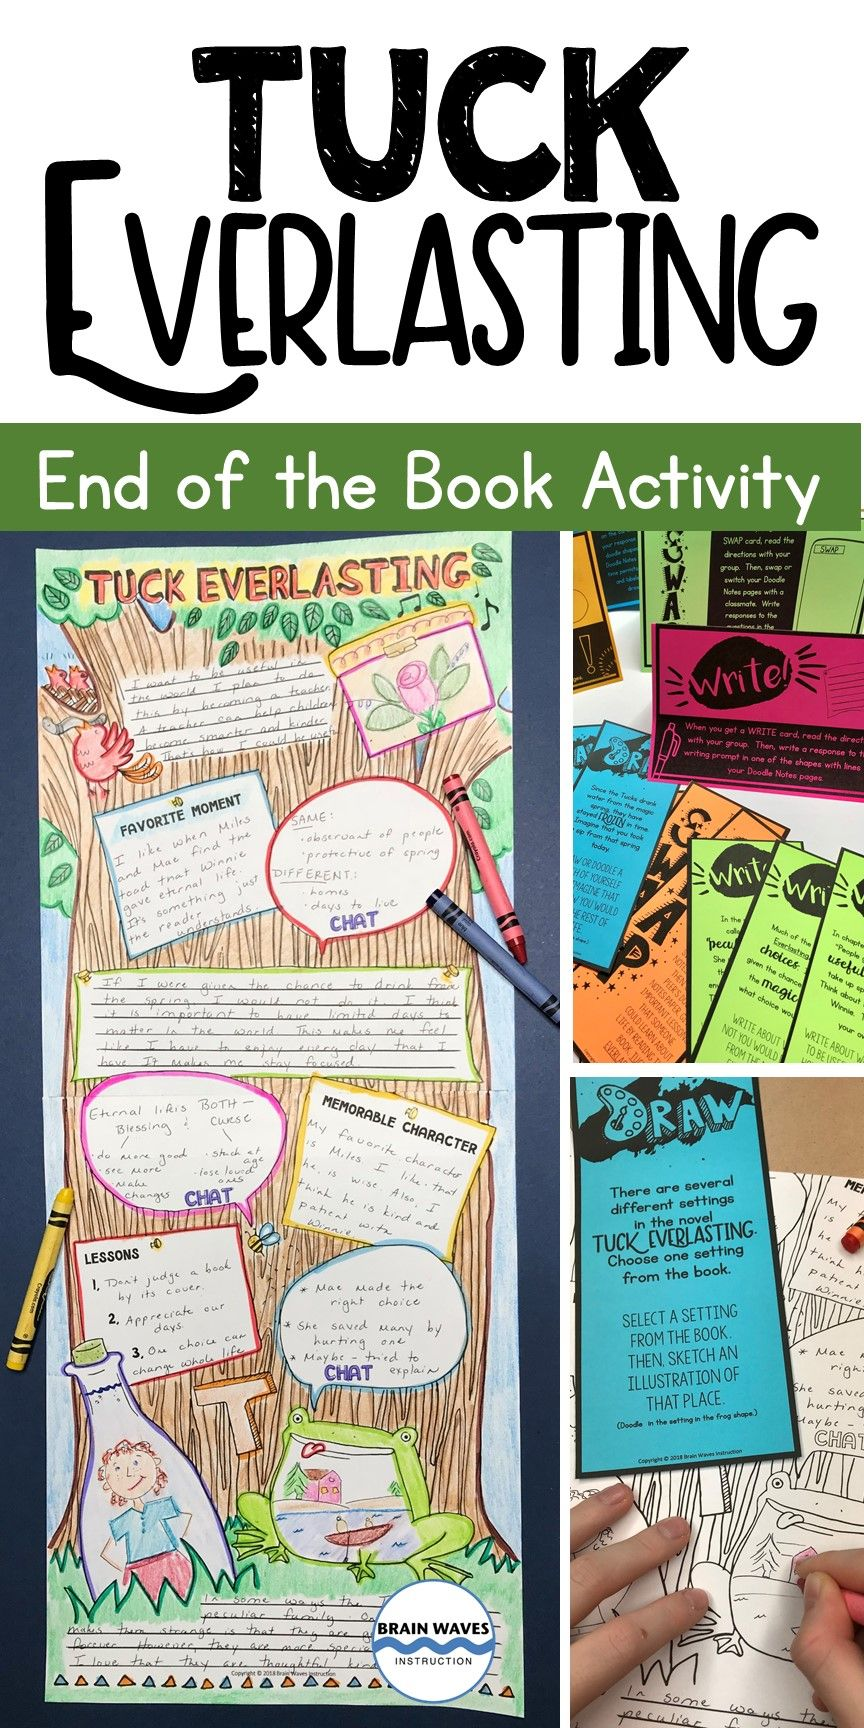 Looking For A Fun And Educational Way To Wrap Up The Book Tuck Everlasting Then You And Your Students Are Going To L Tuck Everlasting Book Projects Task Cards